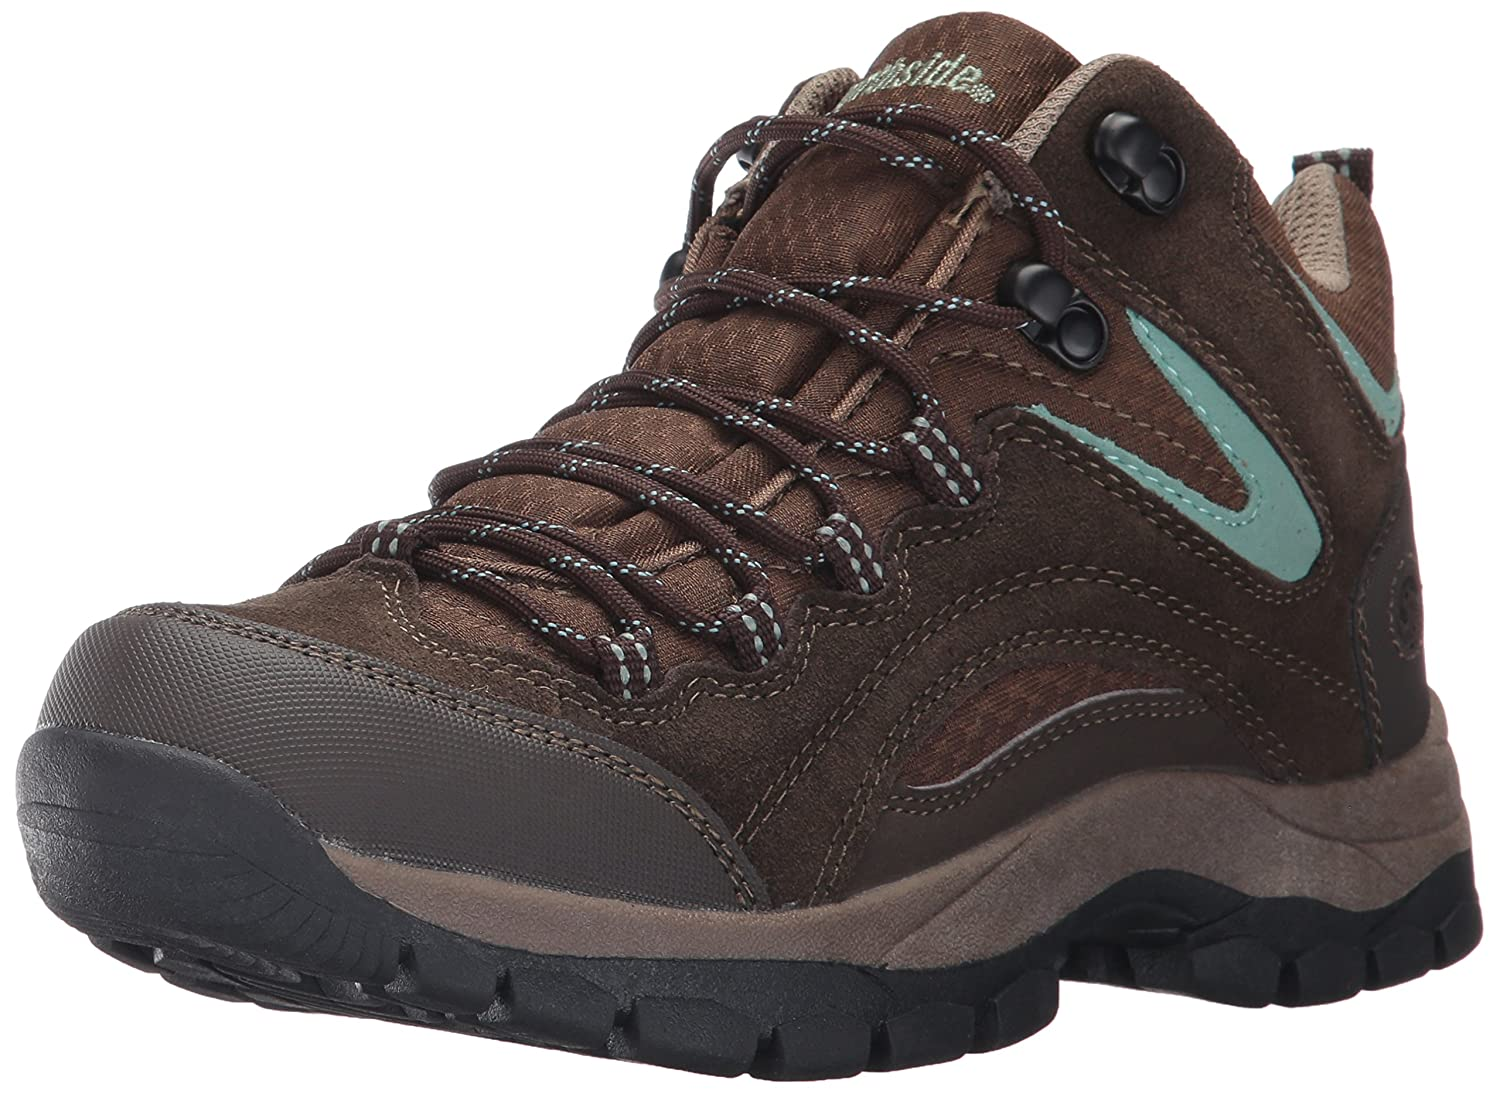 Northside Womens Hiking Pioneer Mid Rise Leather Hiking Womens Boot B01N9WWGG1 9.5 B(M) US|Dk Brown/Sage 8b2ee2